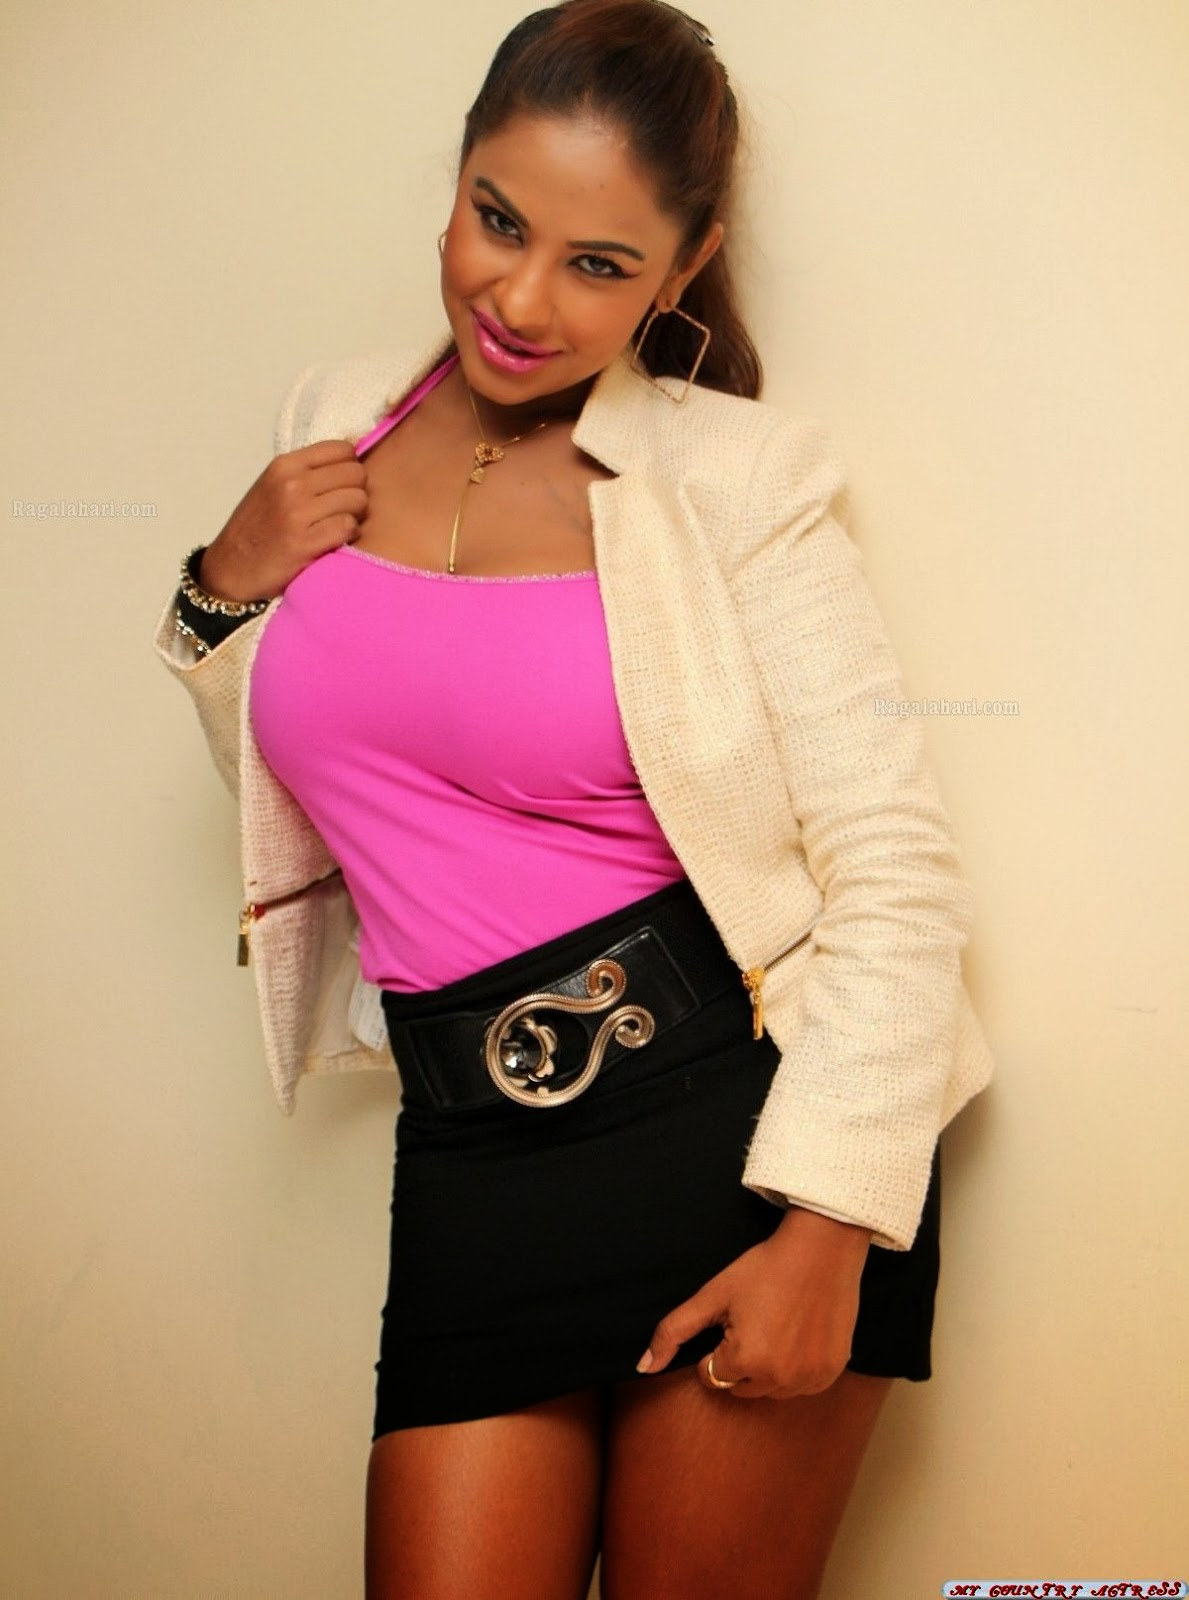 My Country Actress Sri Reddy Mallidi Hot In Pink Top